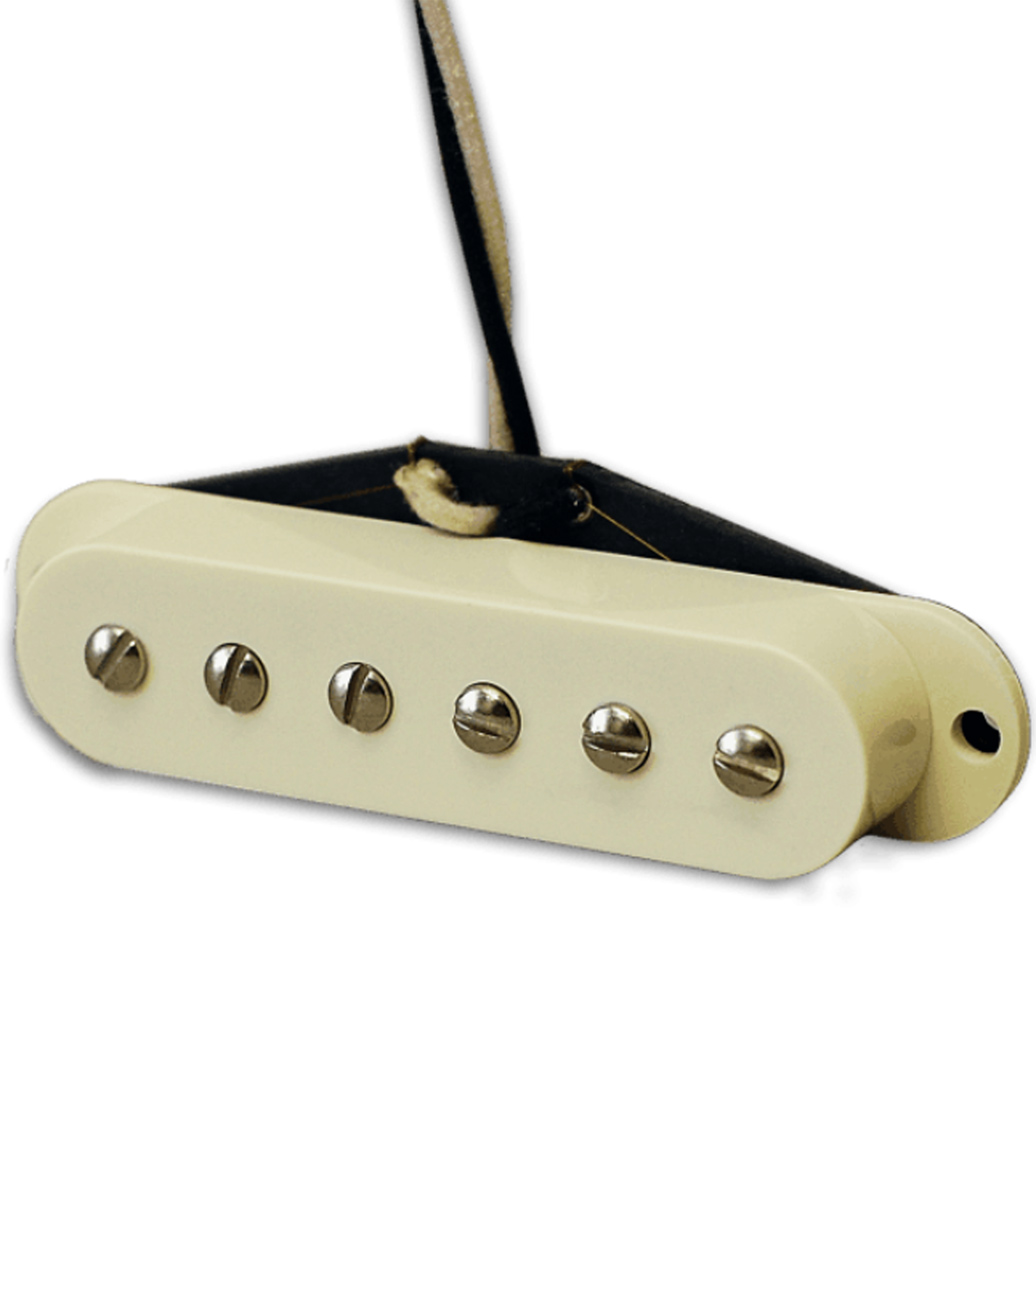 Lindy Fralin Steel Pole 42 Stratocaster neck pickup